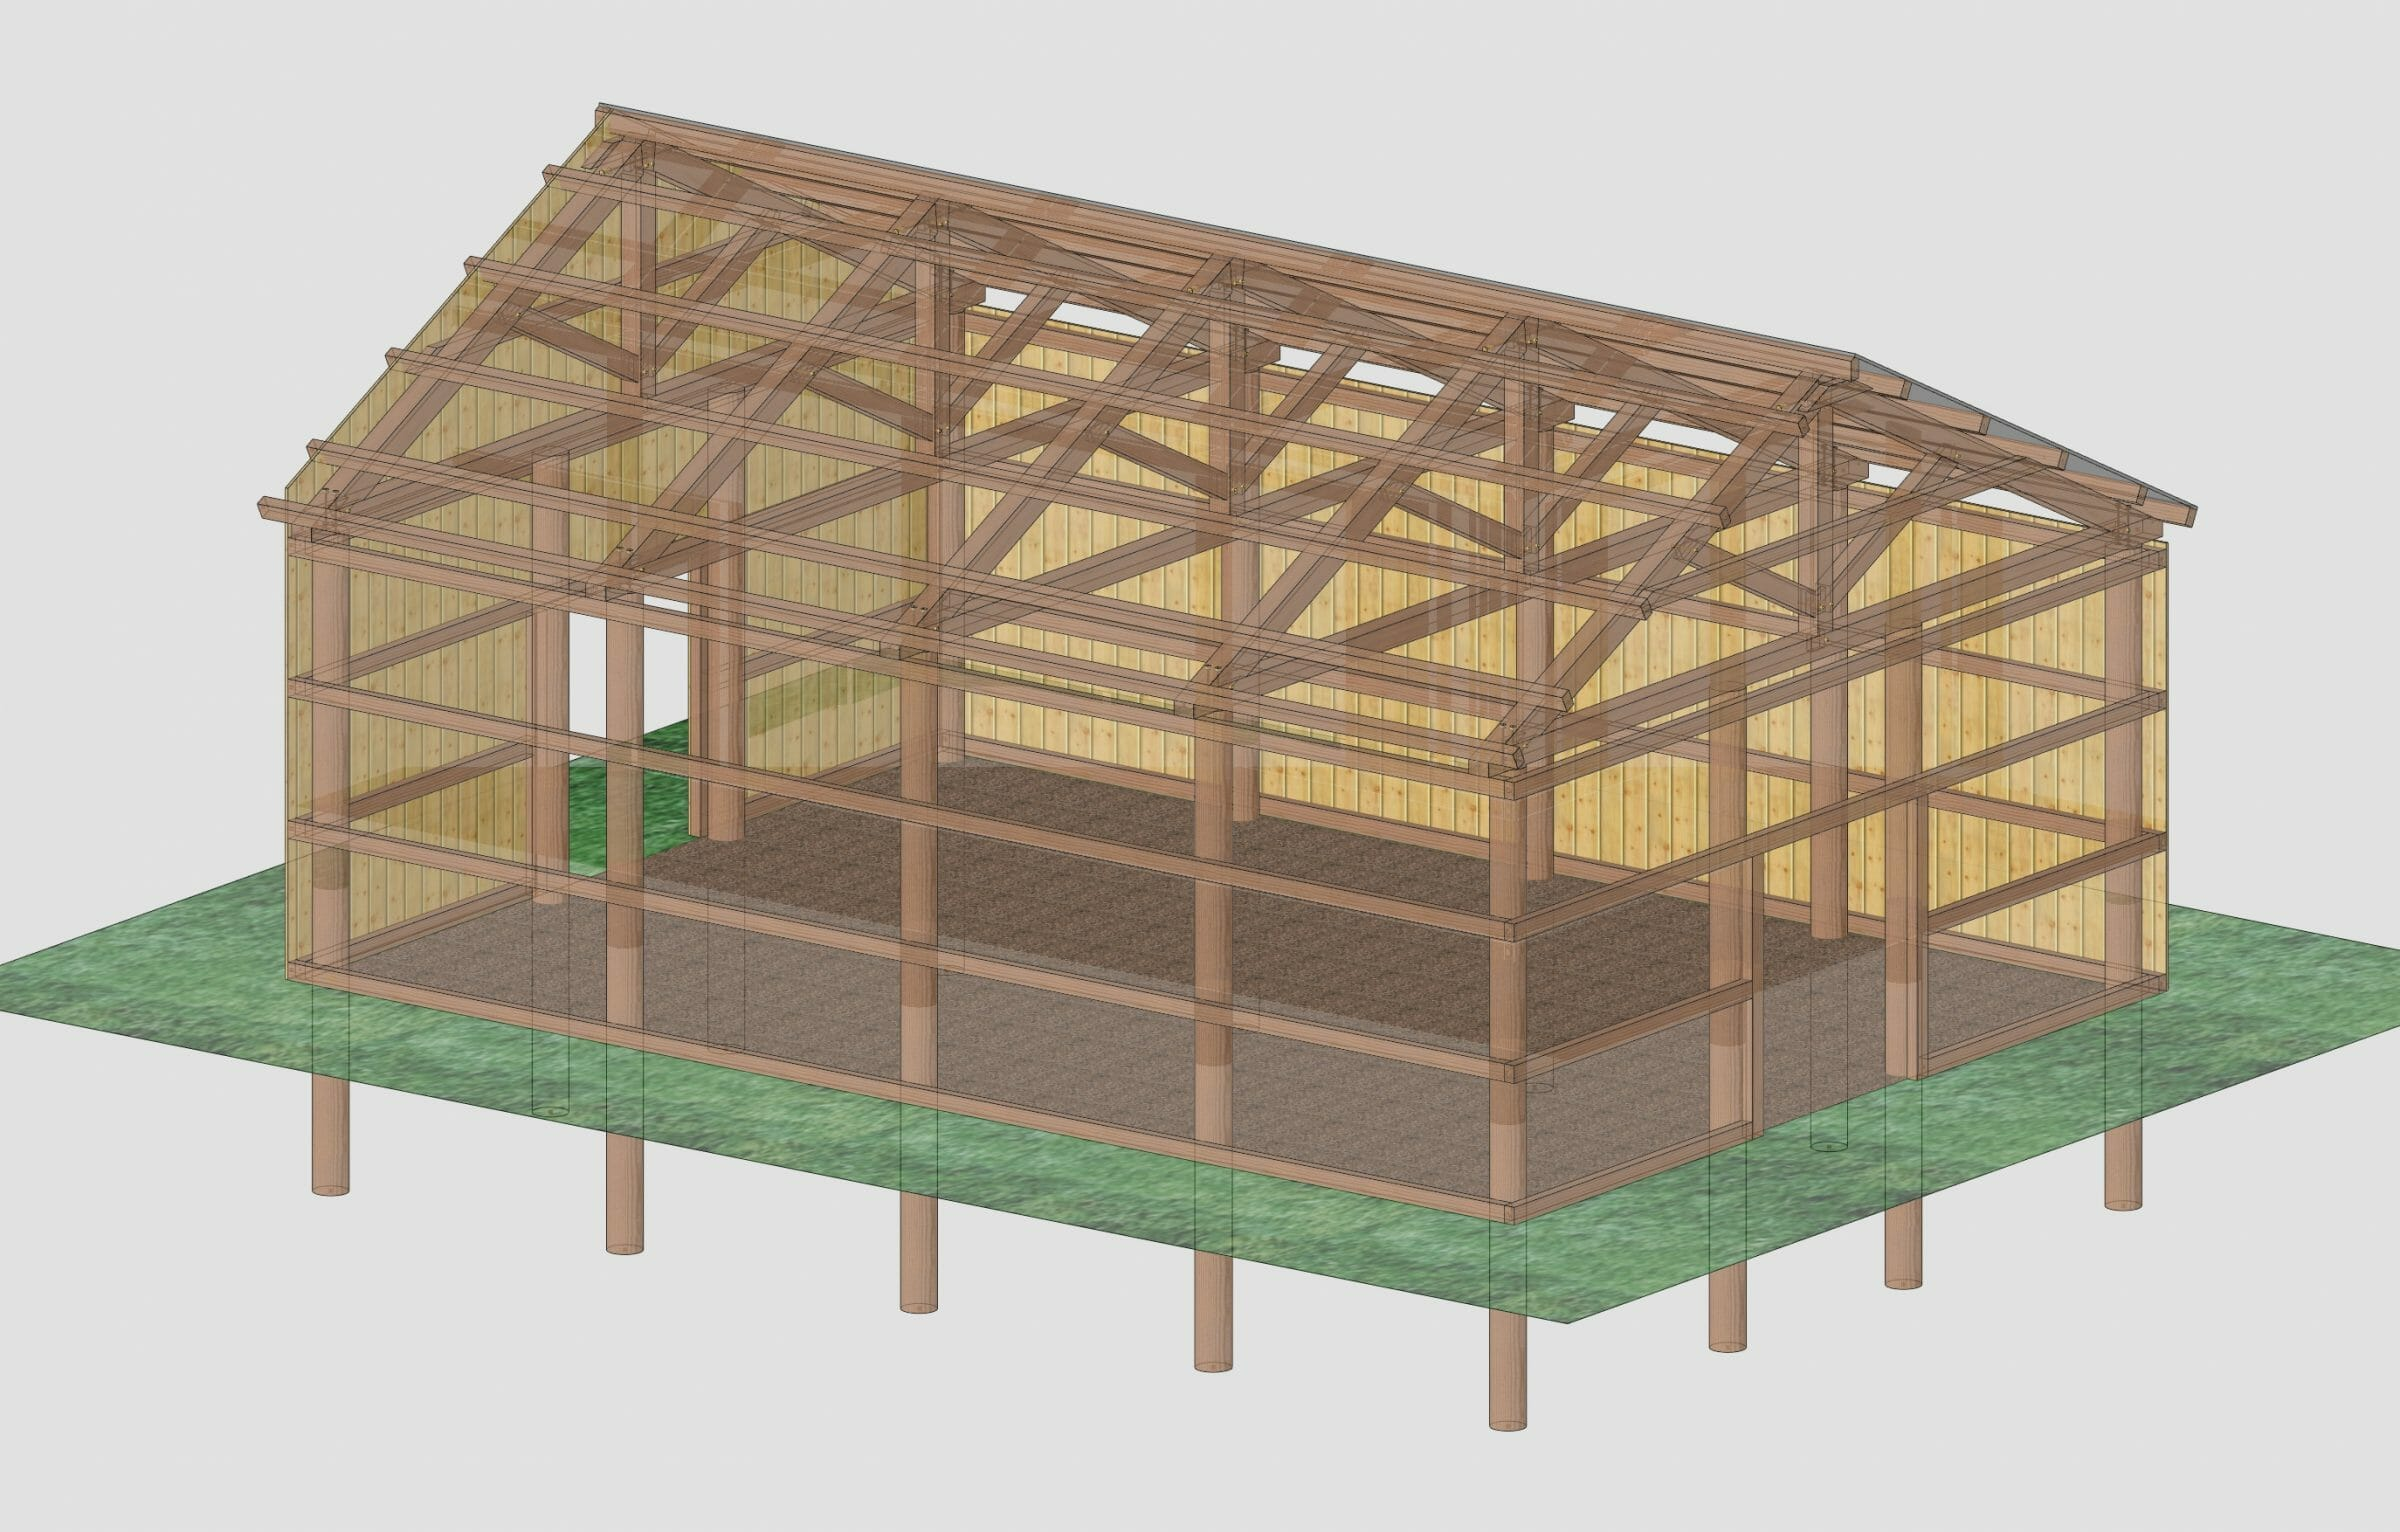 3D Model of a Pole Barn